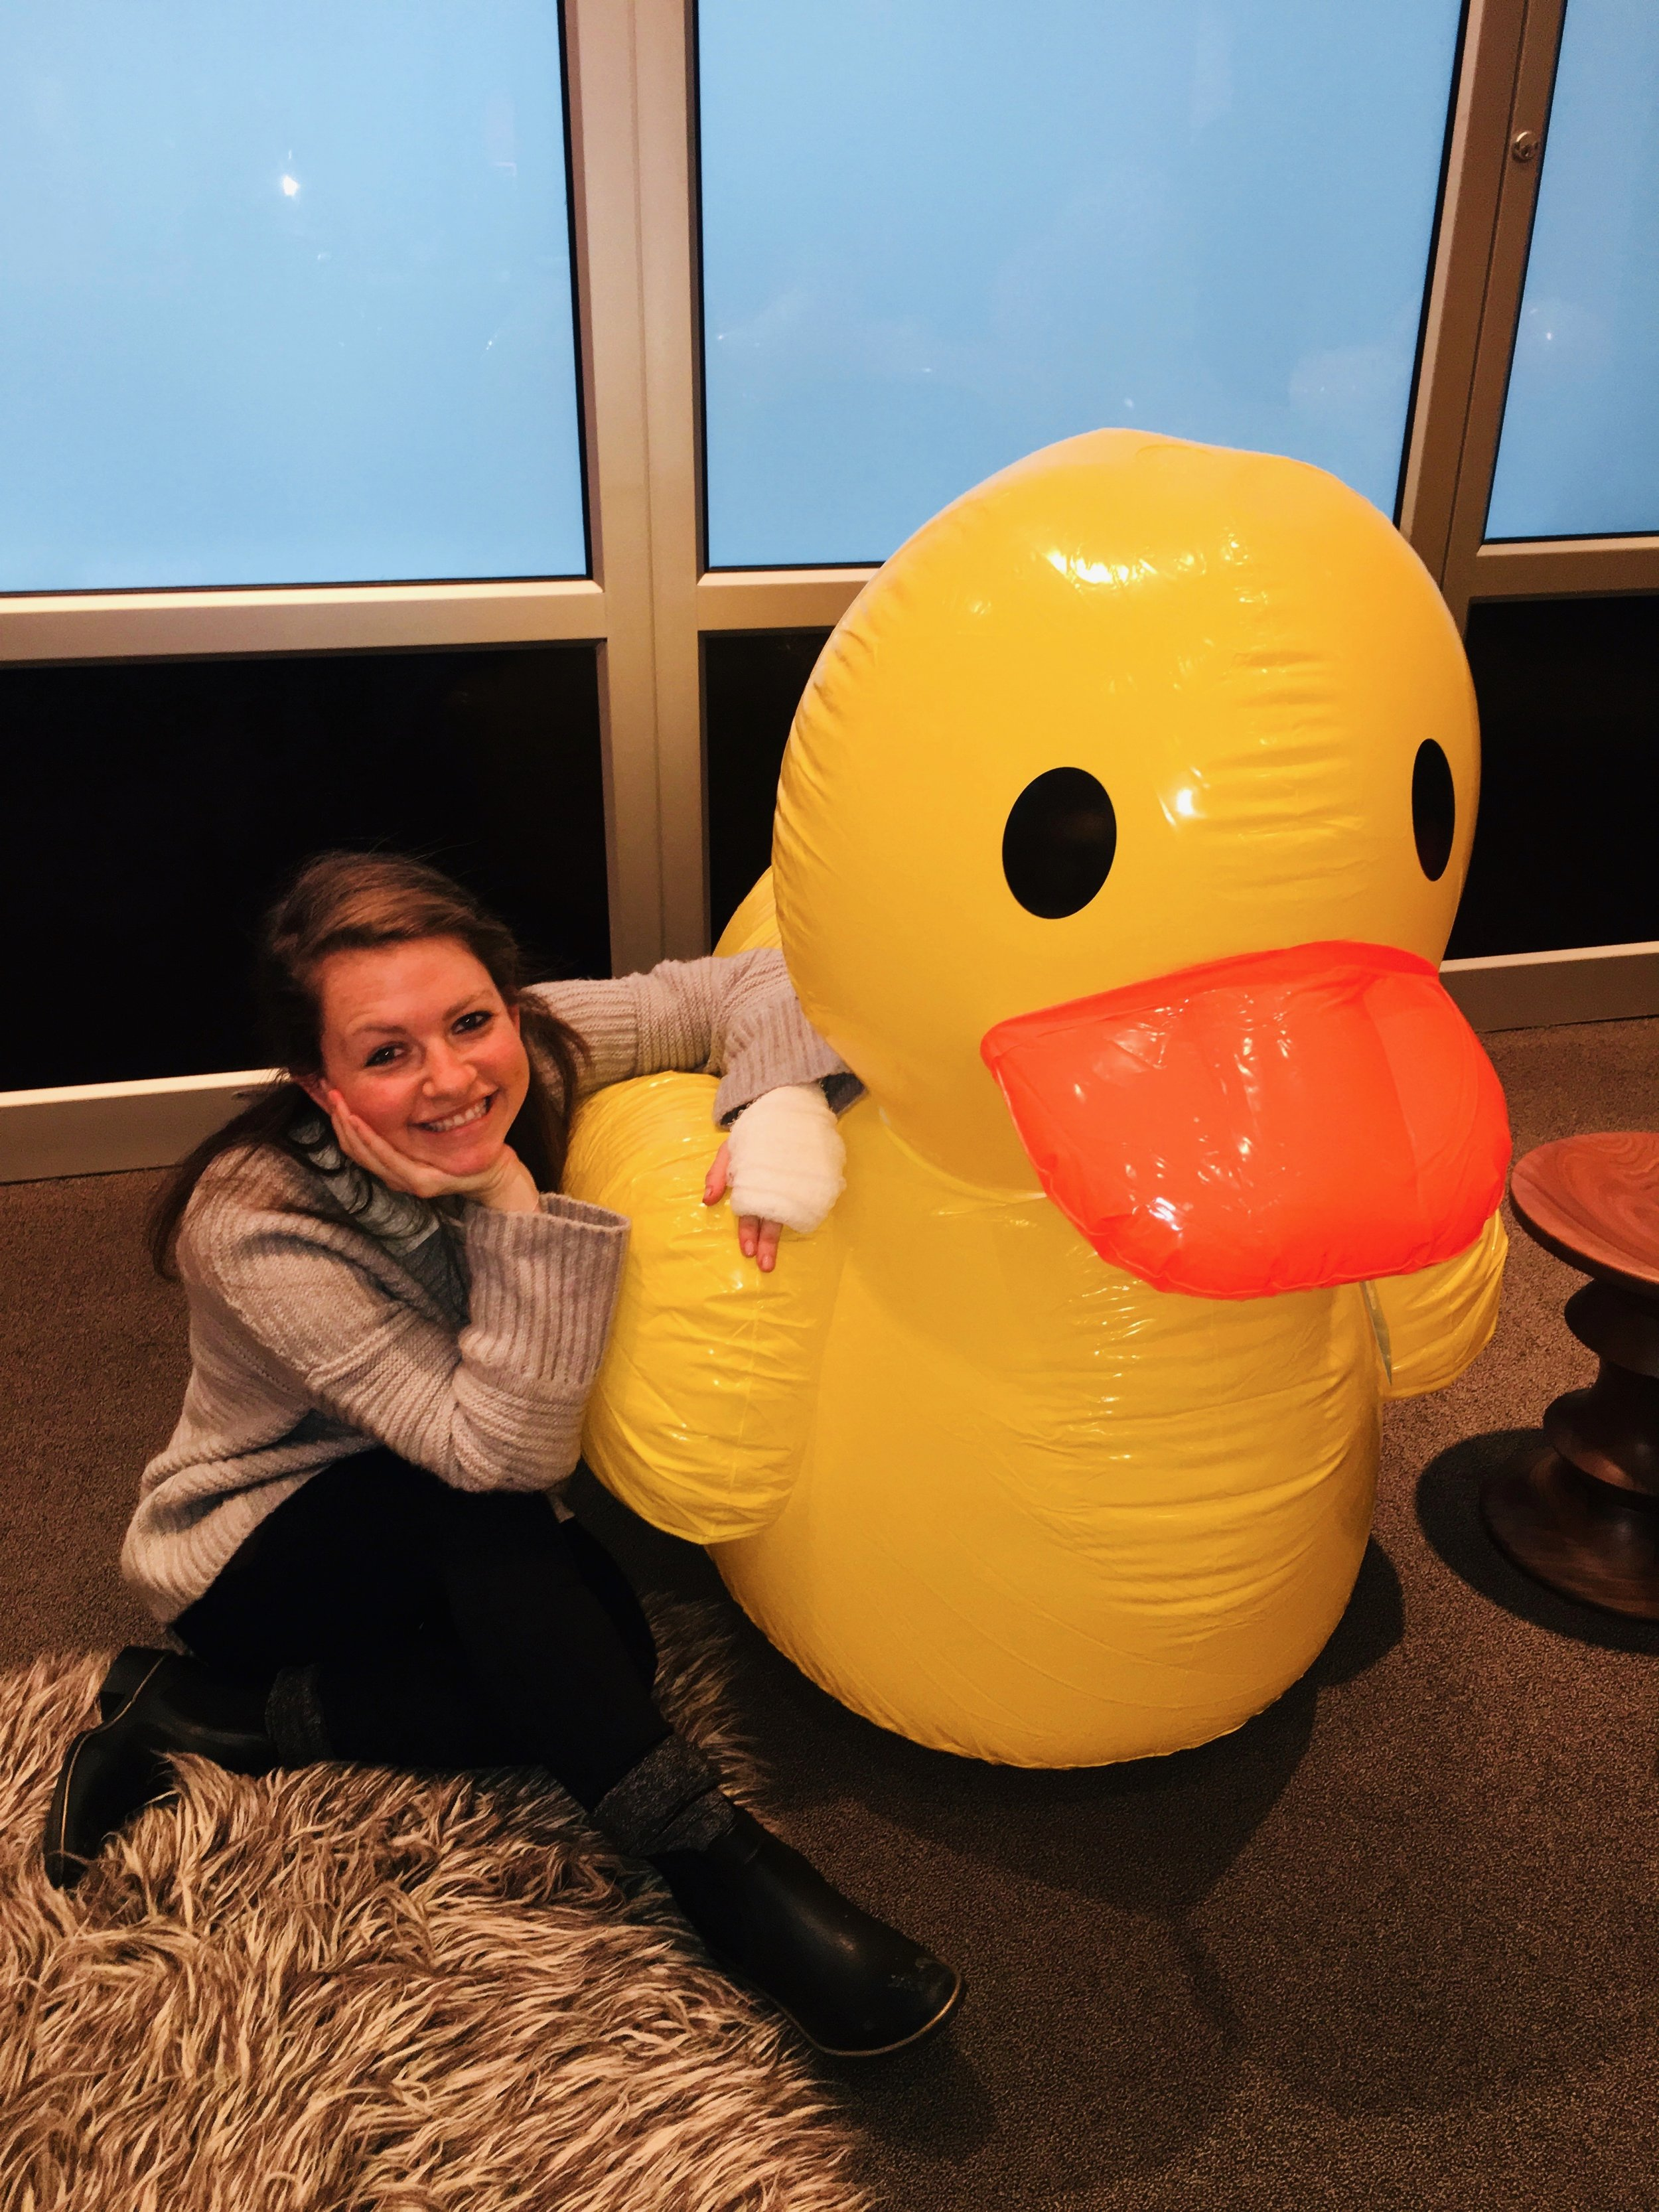 Most people burn their hand and put on cream. I burnt my hand and was shaking and nauseous for two days. But let's talk about this duck...right?